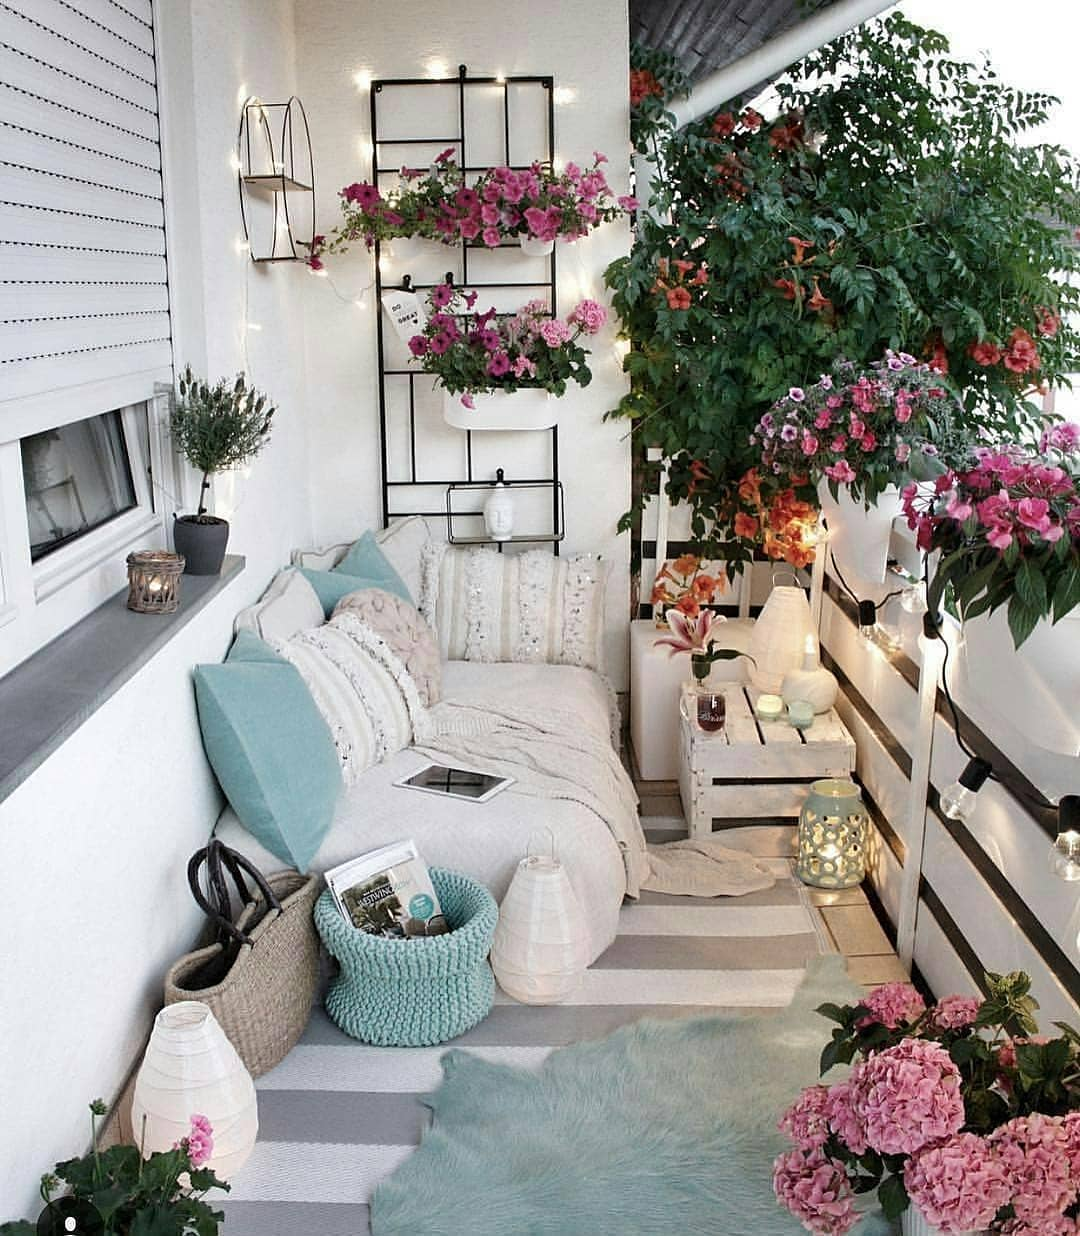 40-cozy-balcony-ideas-and-decor-inspiration-2019